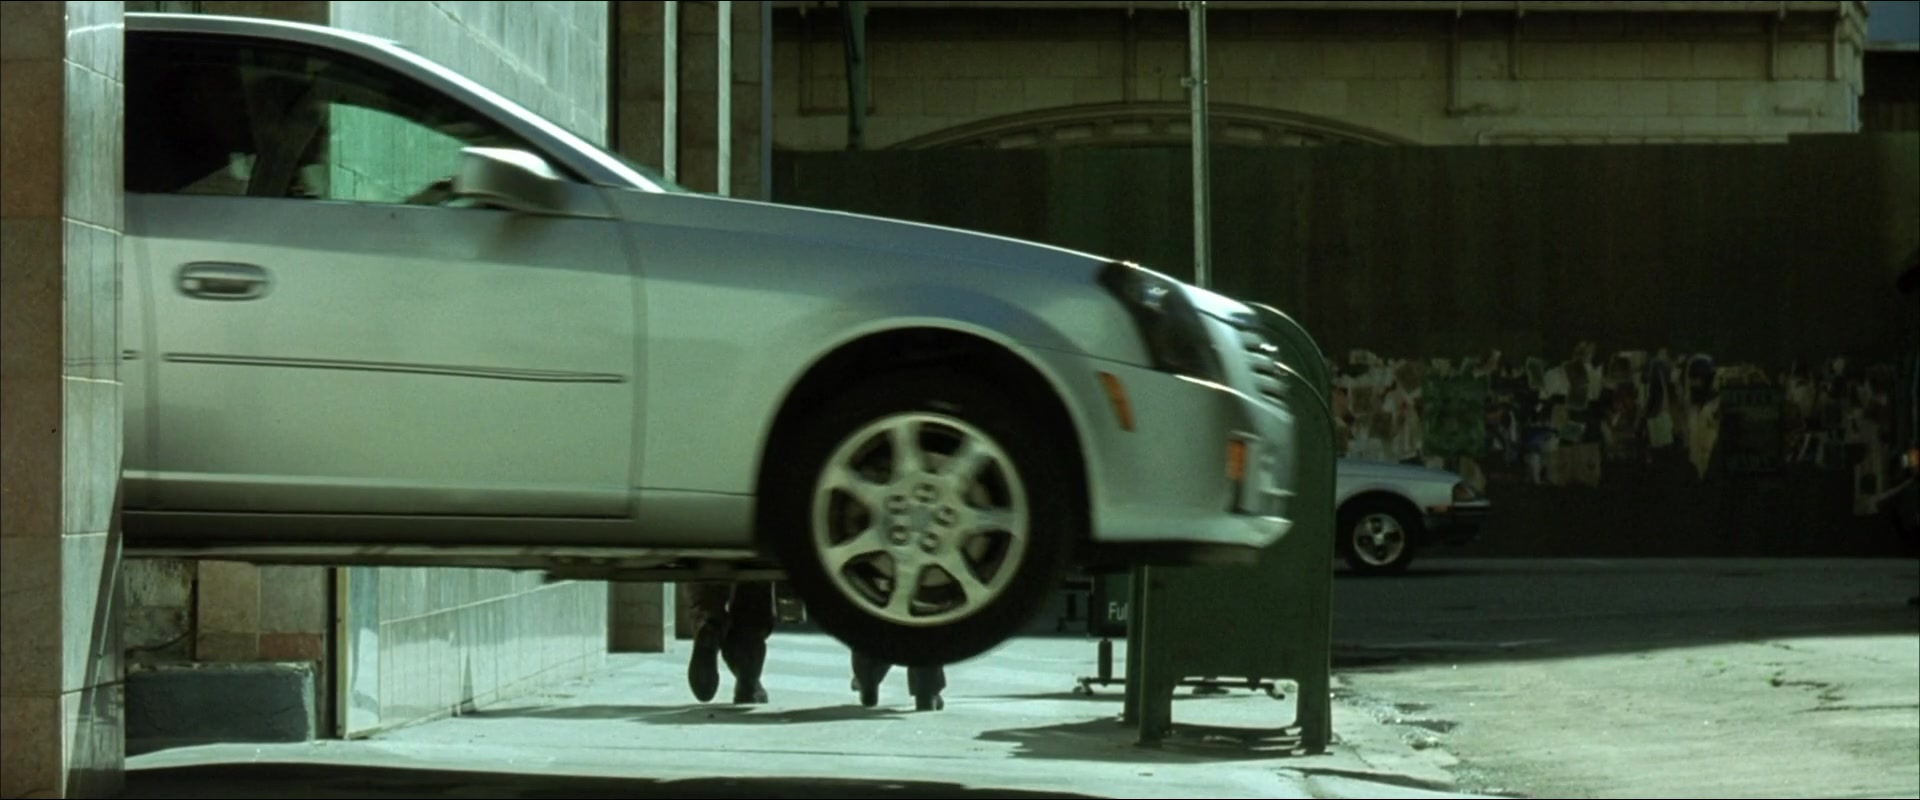 Cadillac Cts Car In The Matrix Reloaded 2003